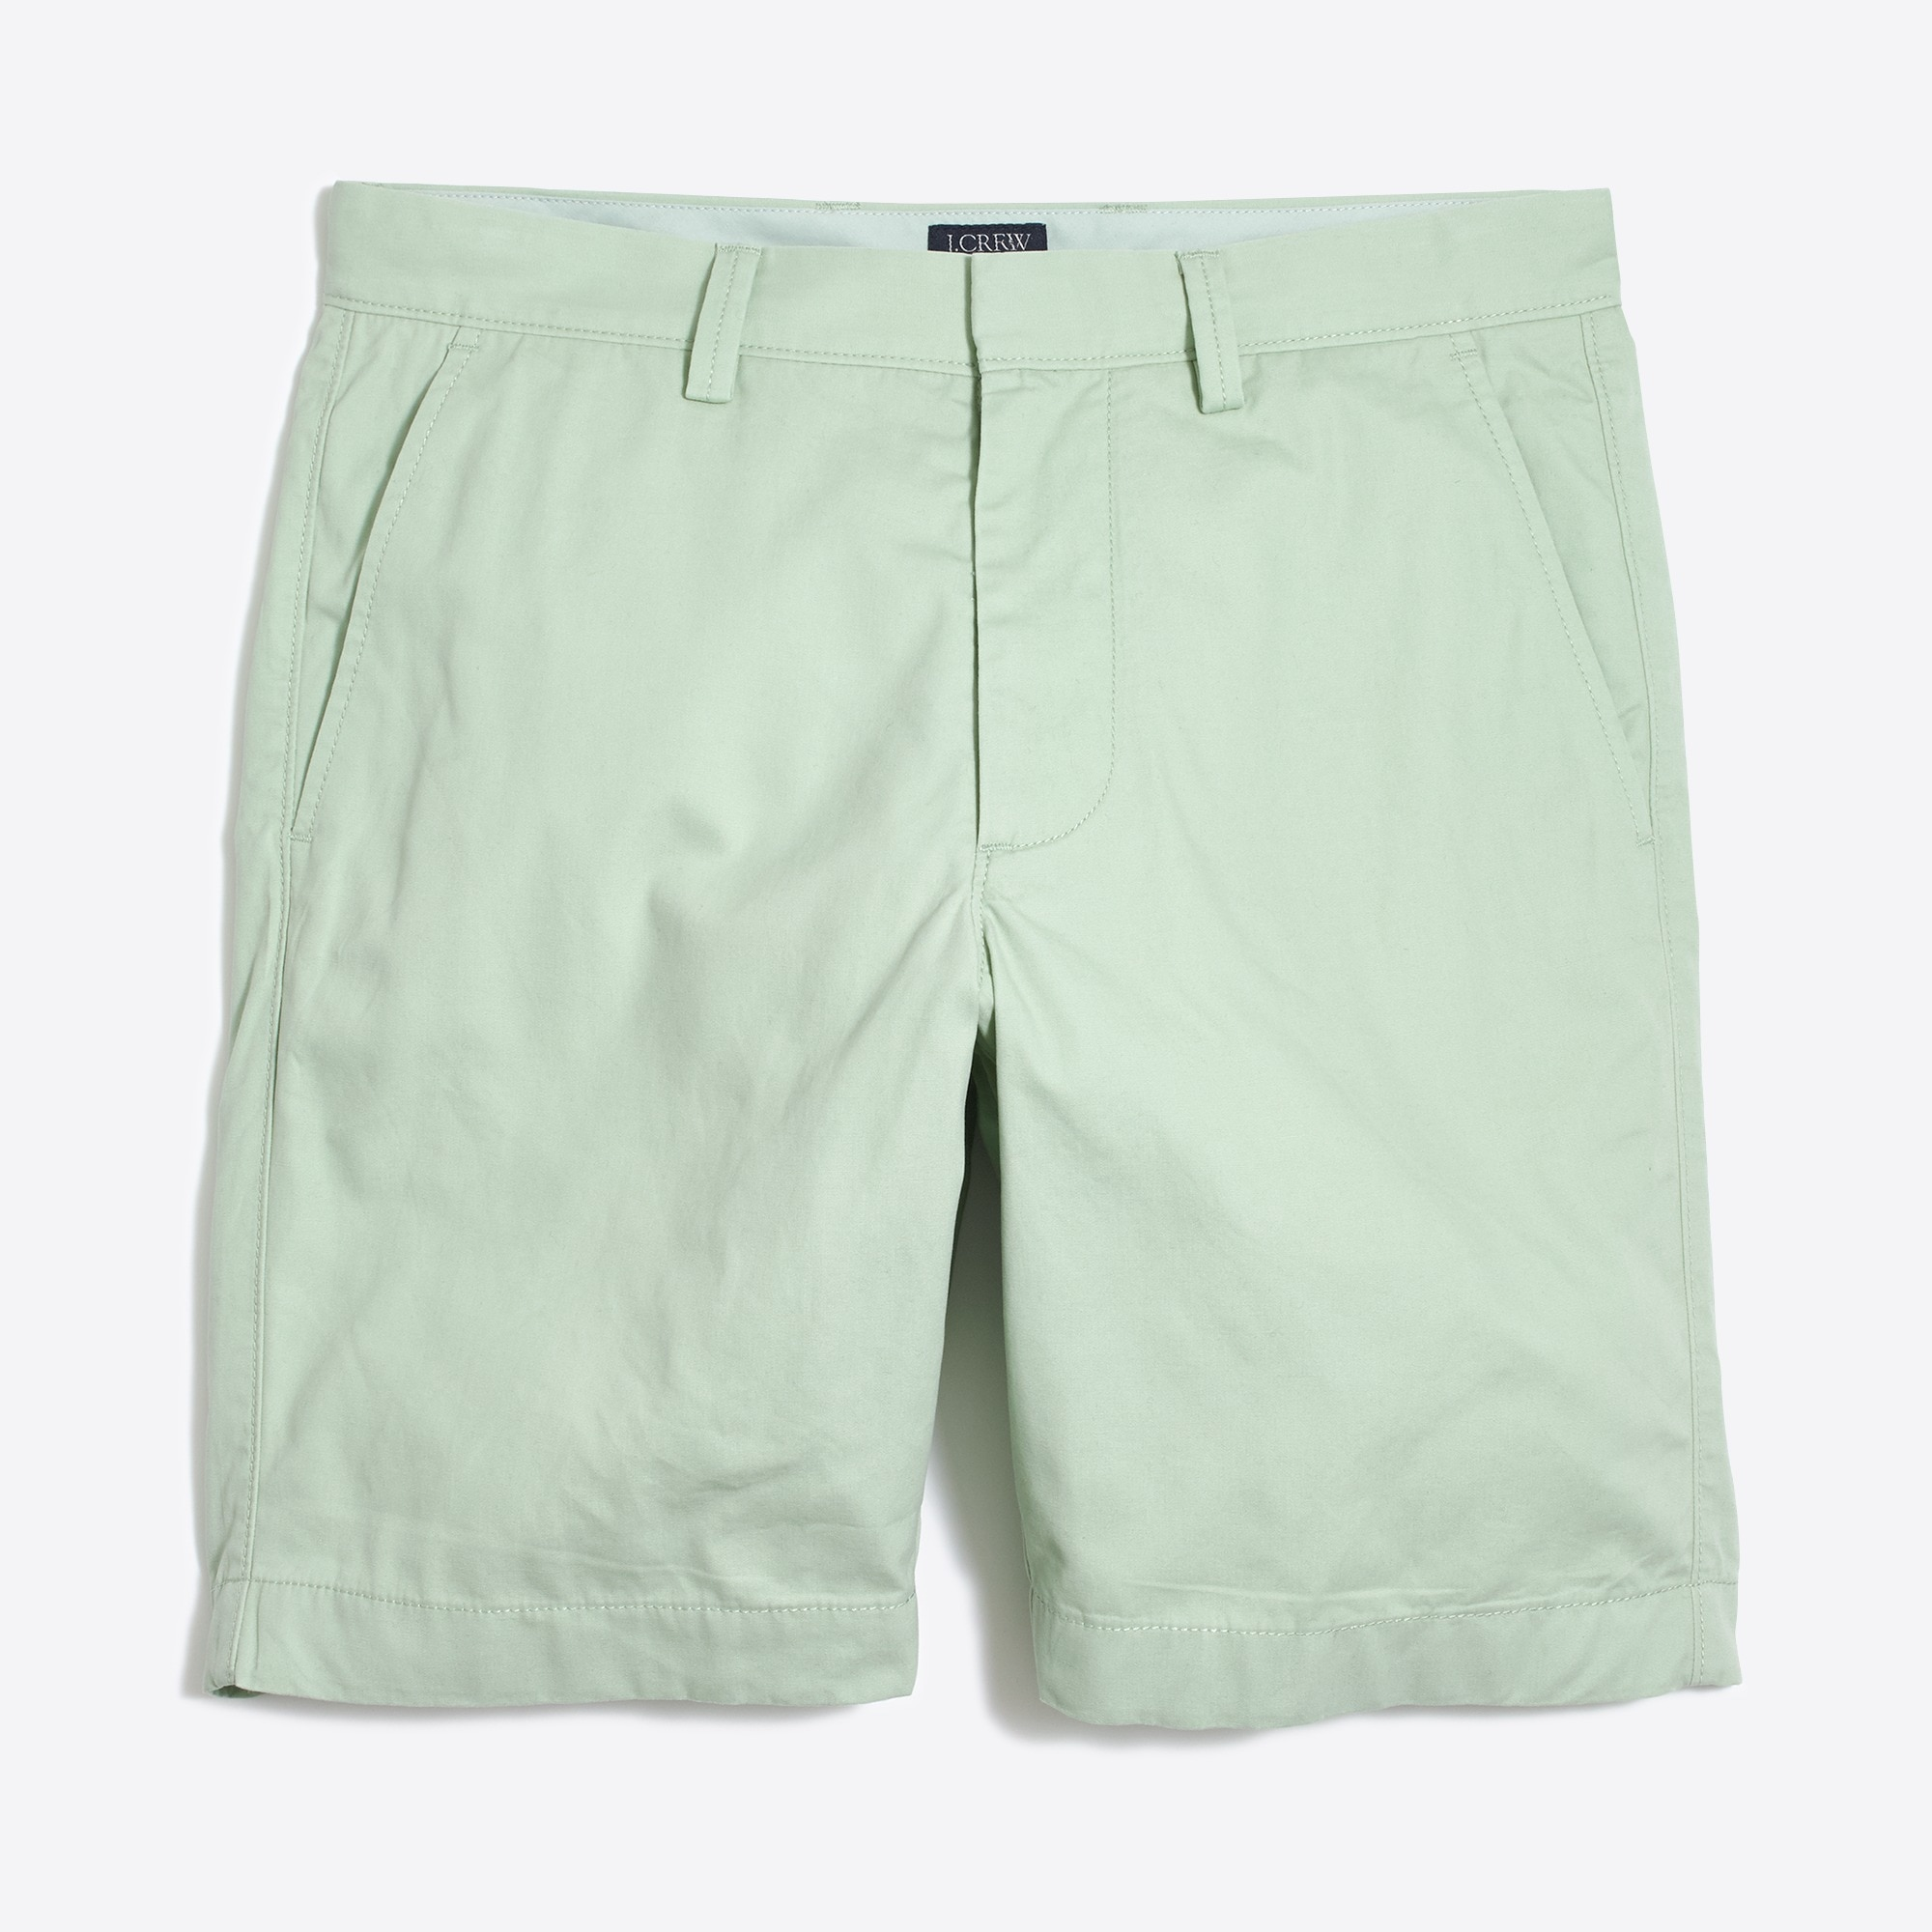 "Image 2 for 9"" Gramercy lightweight short"